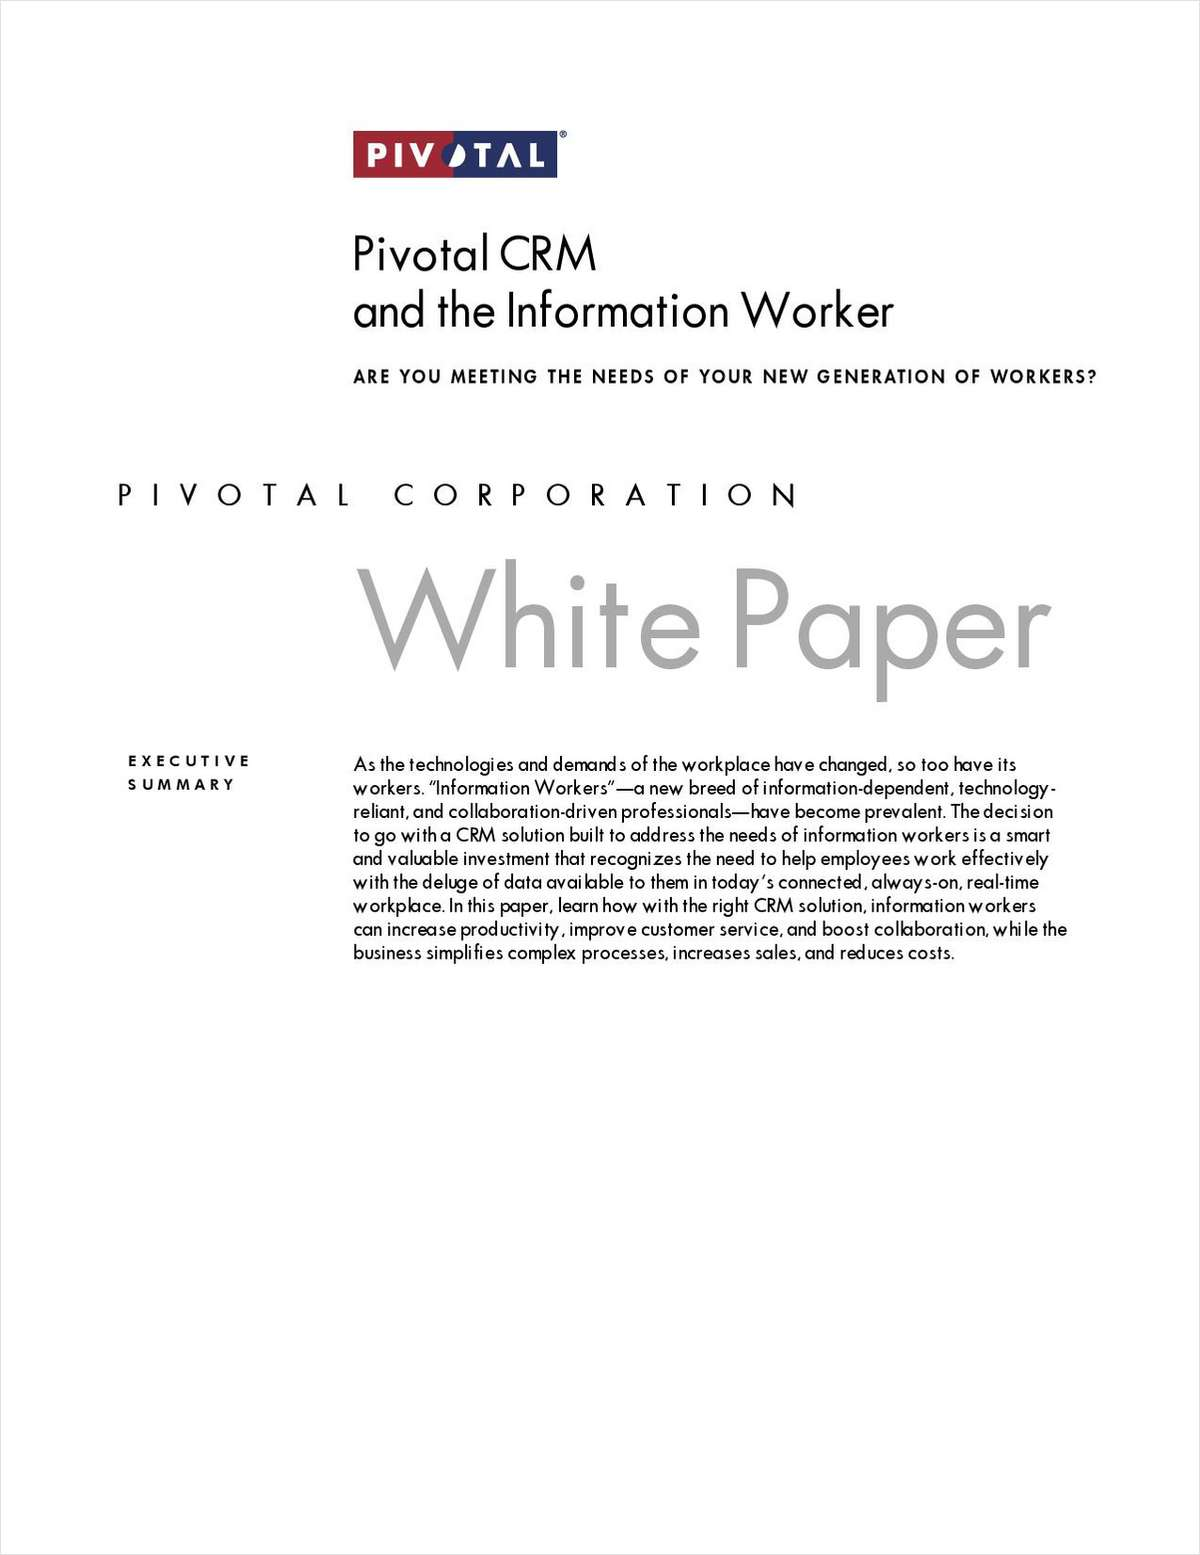 Pivotal CRM and the Information Worker: Are You Meeting the Needs of Your New Generation of Workers?